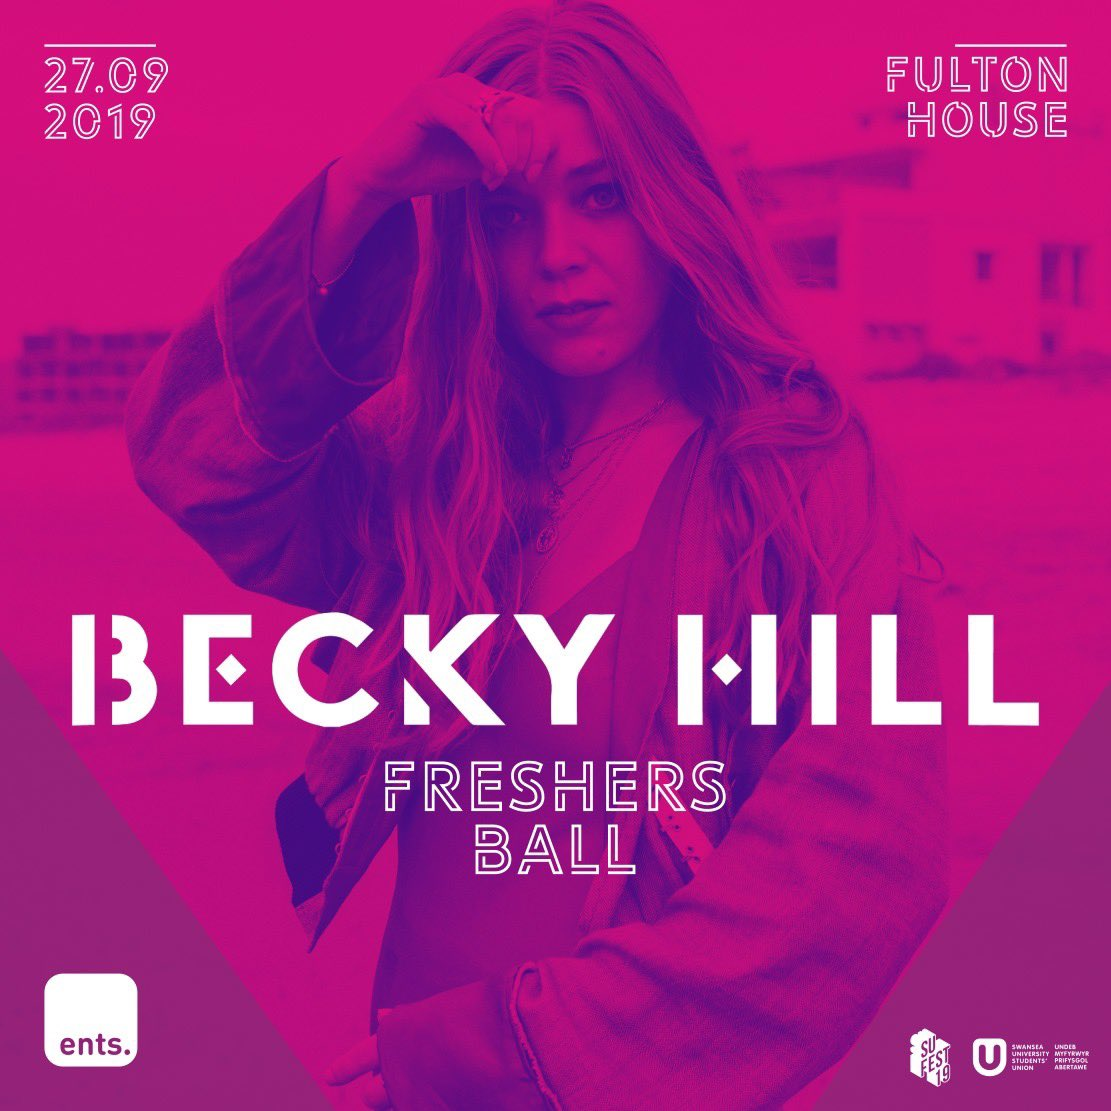 We are UNBELIEVABLY excited to announce that joining us for Freshers Ball this year will be @BeckyHill   With the SONG of the SUMMER, you guys are in for a serious treat https://t.co/PGyd7u6e1R